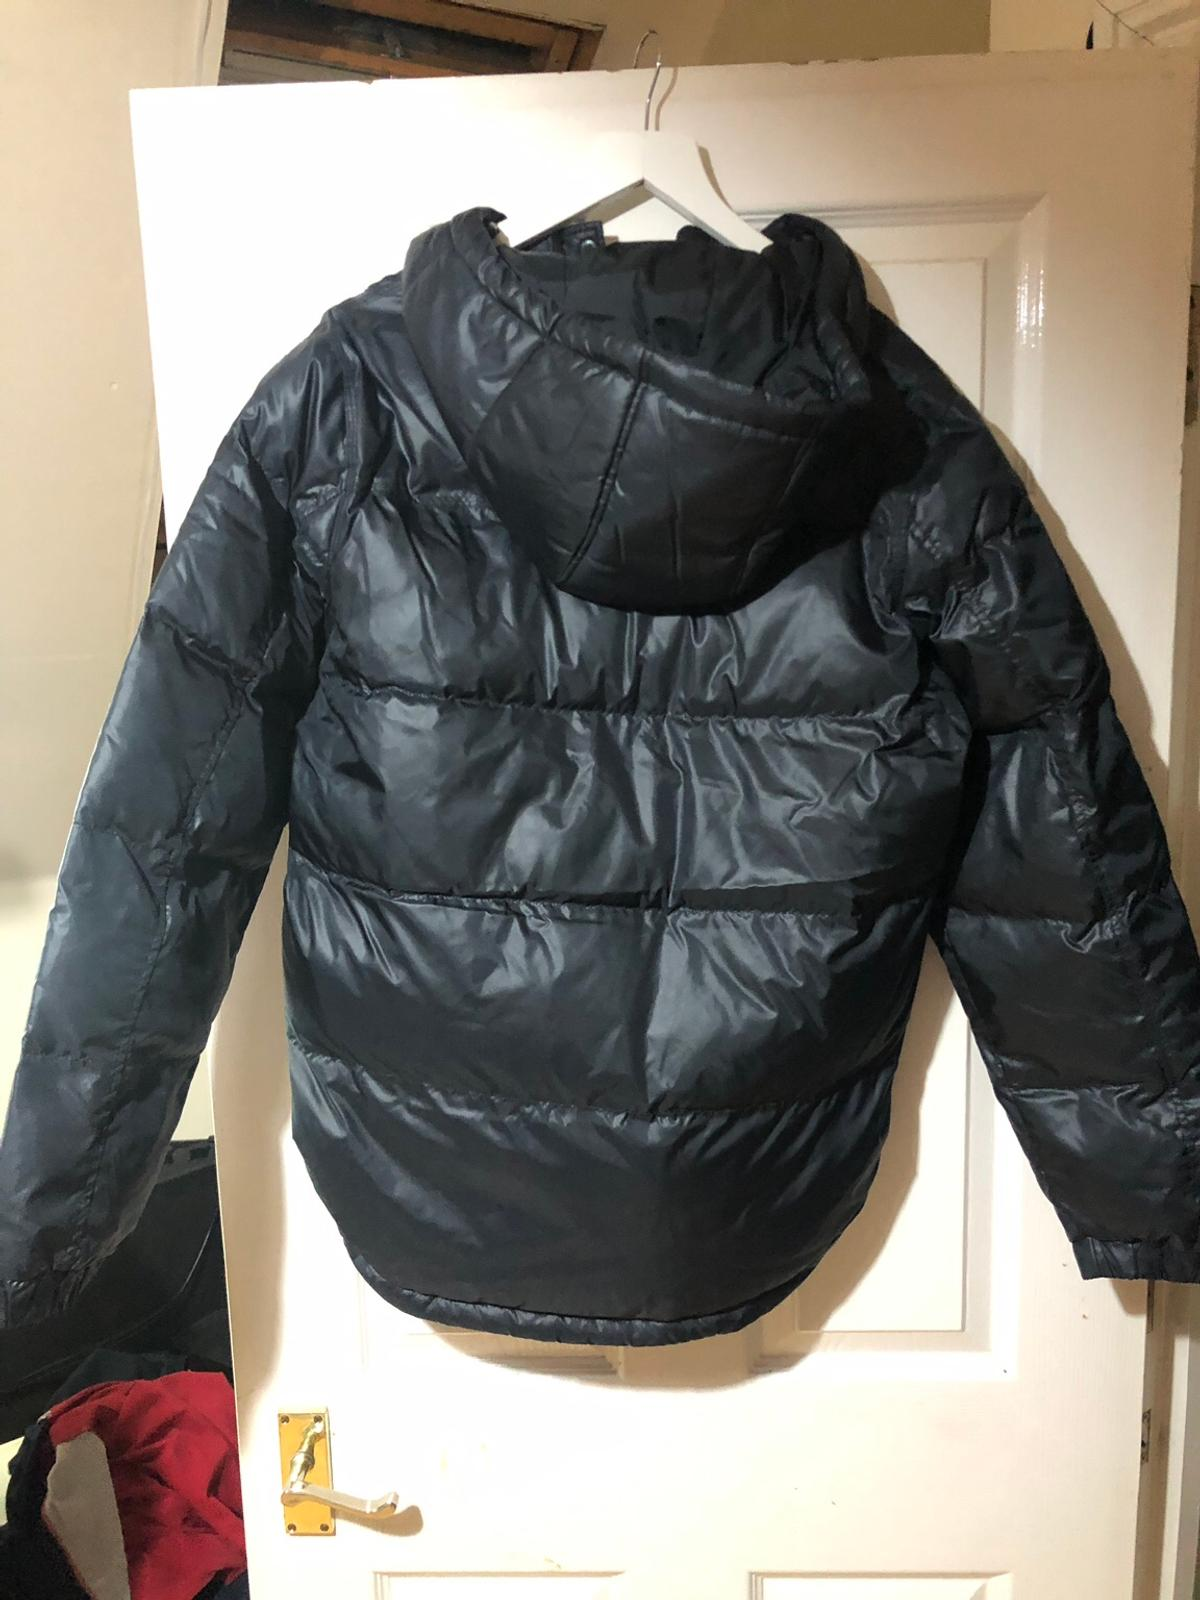 95b3cd324705 Converse men s jacket in IG11 Dagenham for £30.00 for sale - Shpock